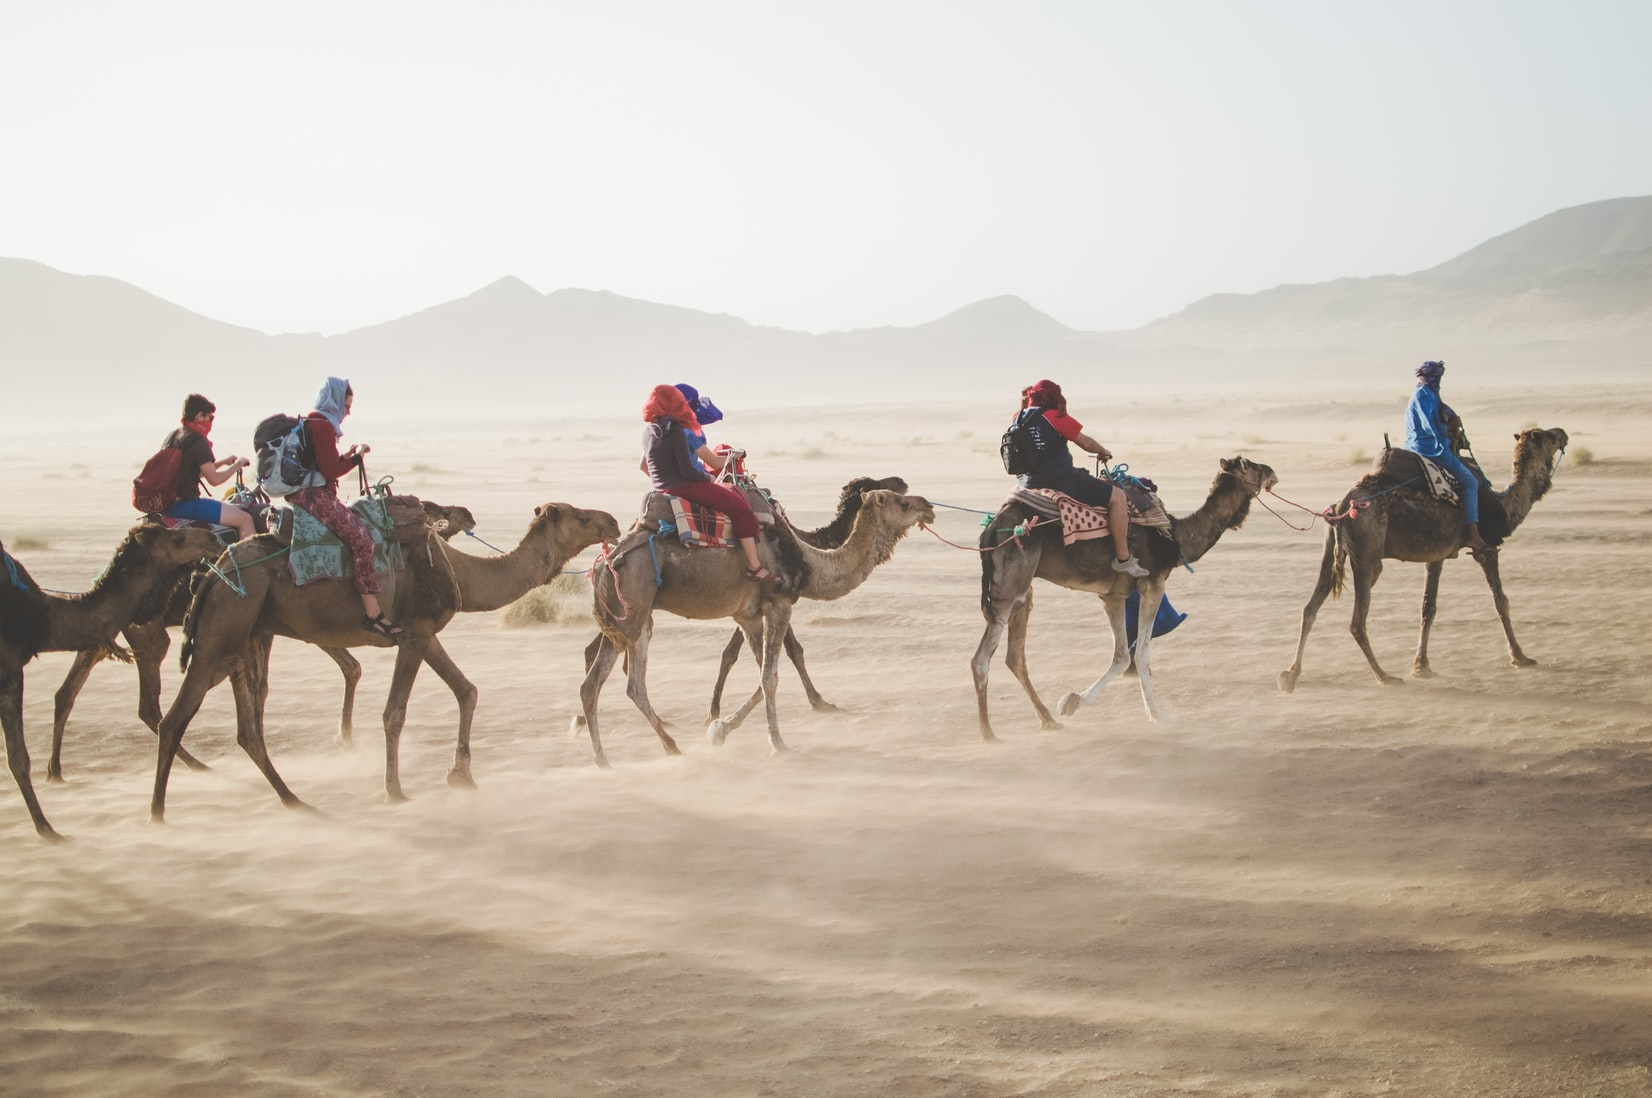 Camel riders crossing the desert